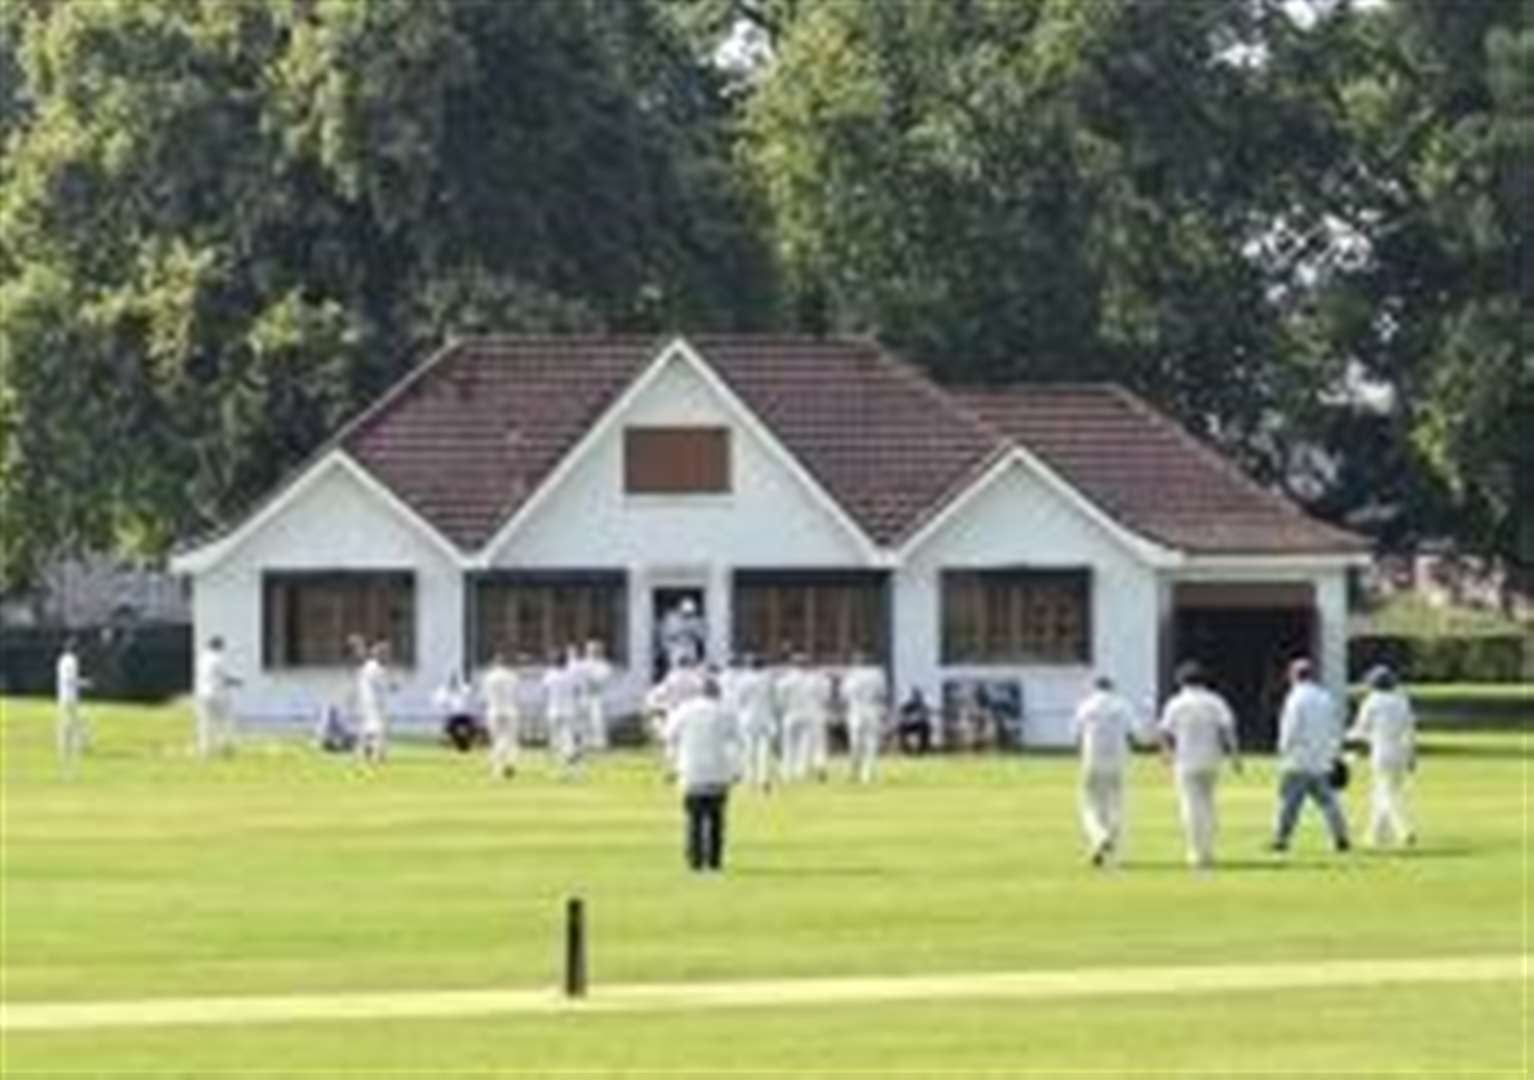 Cricket pavilion to be upgraded